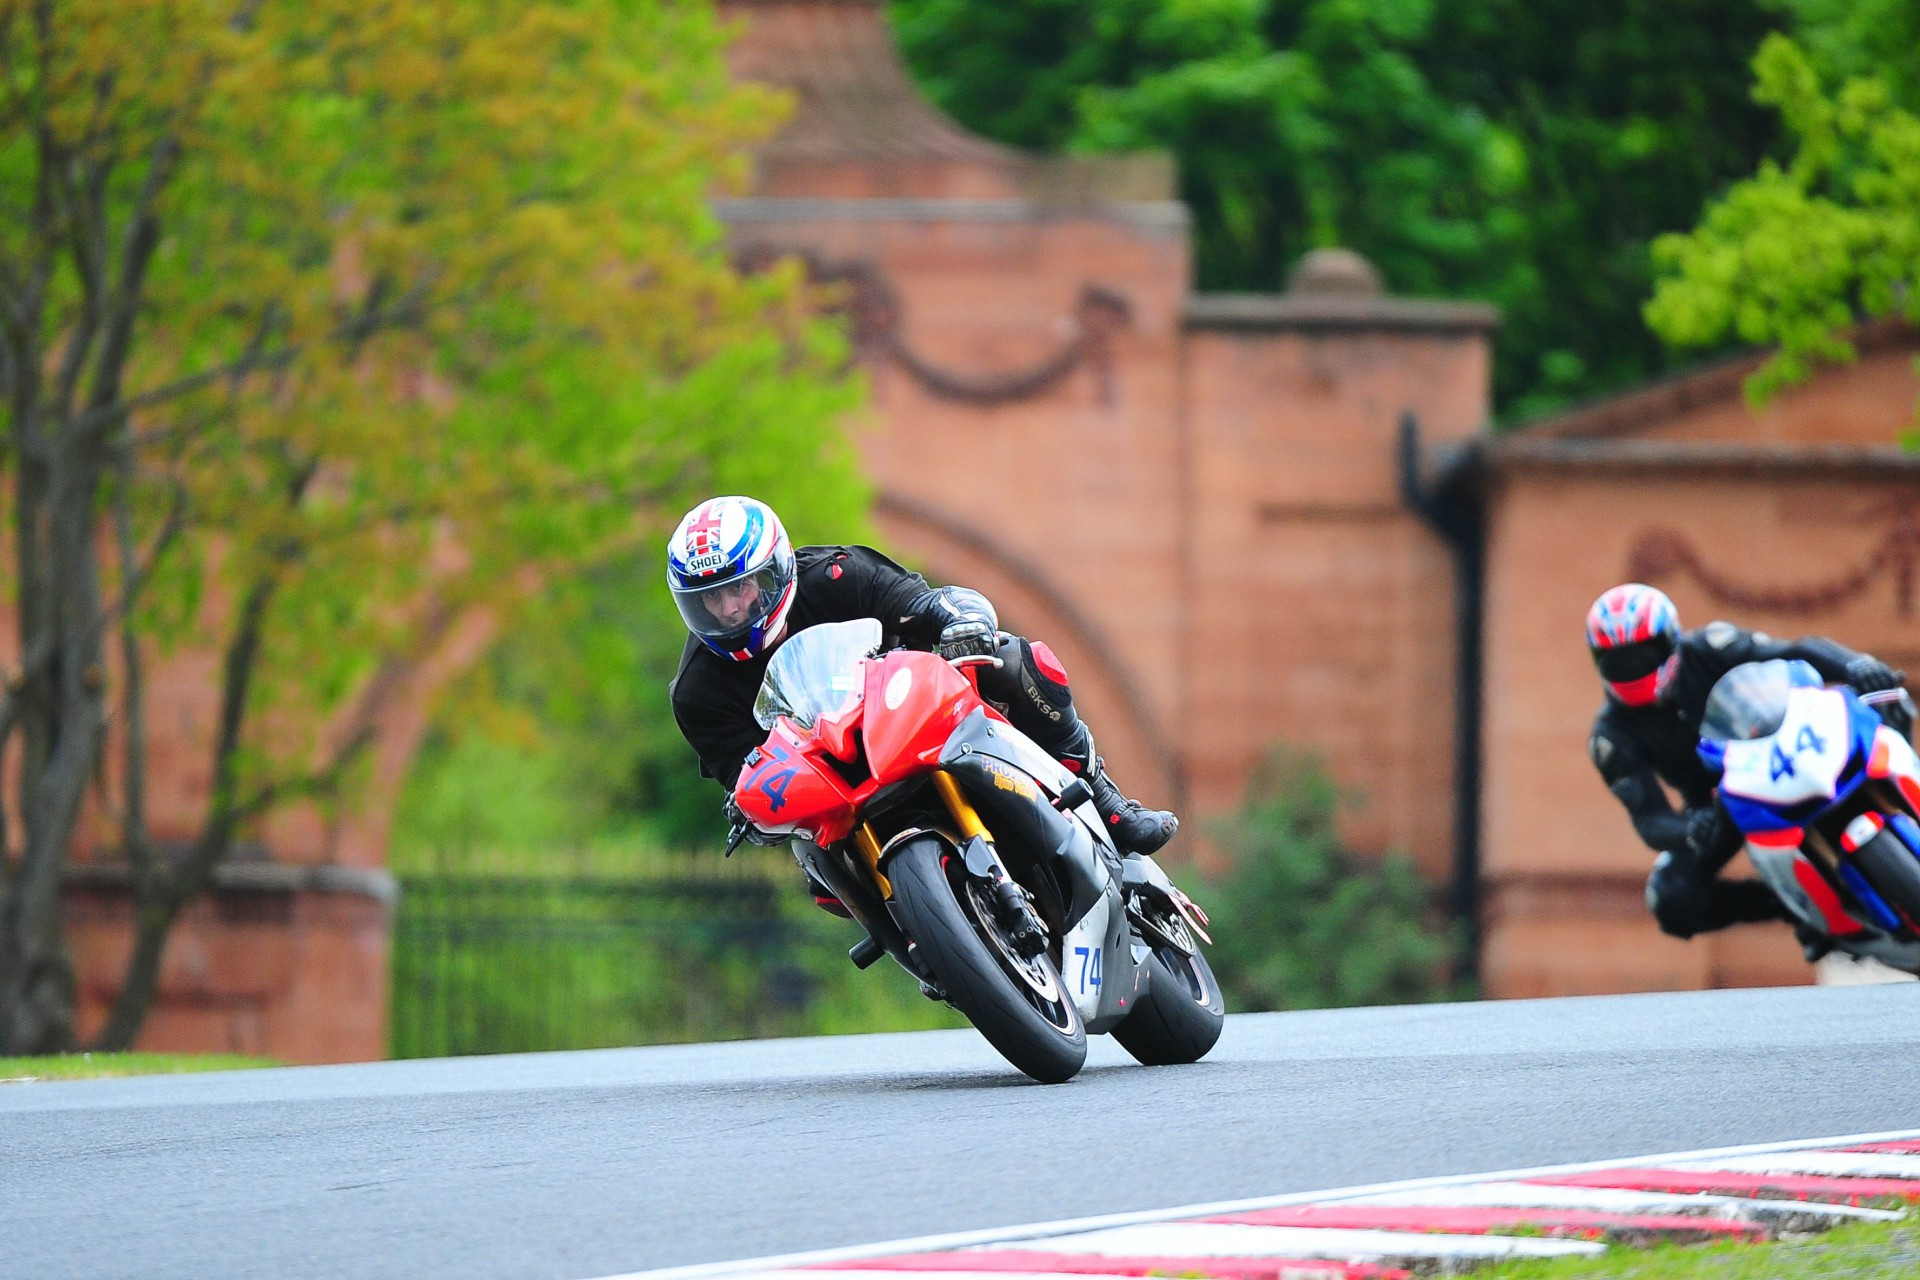 SPACES OPENED UP AT OULTON PARK ROUND 1